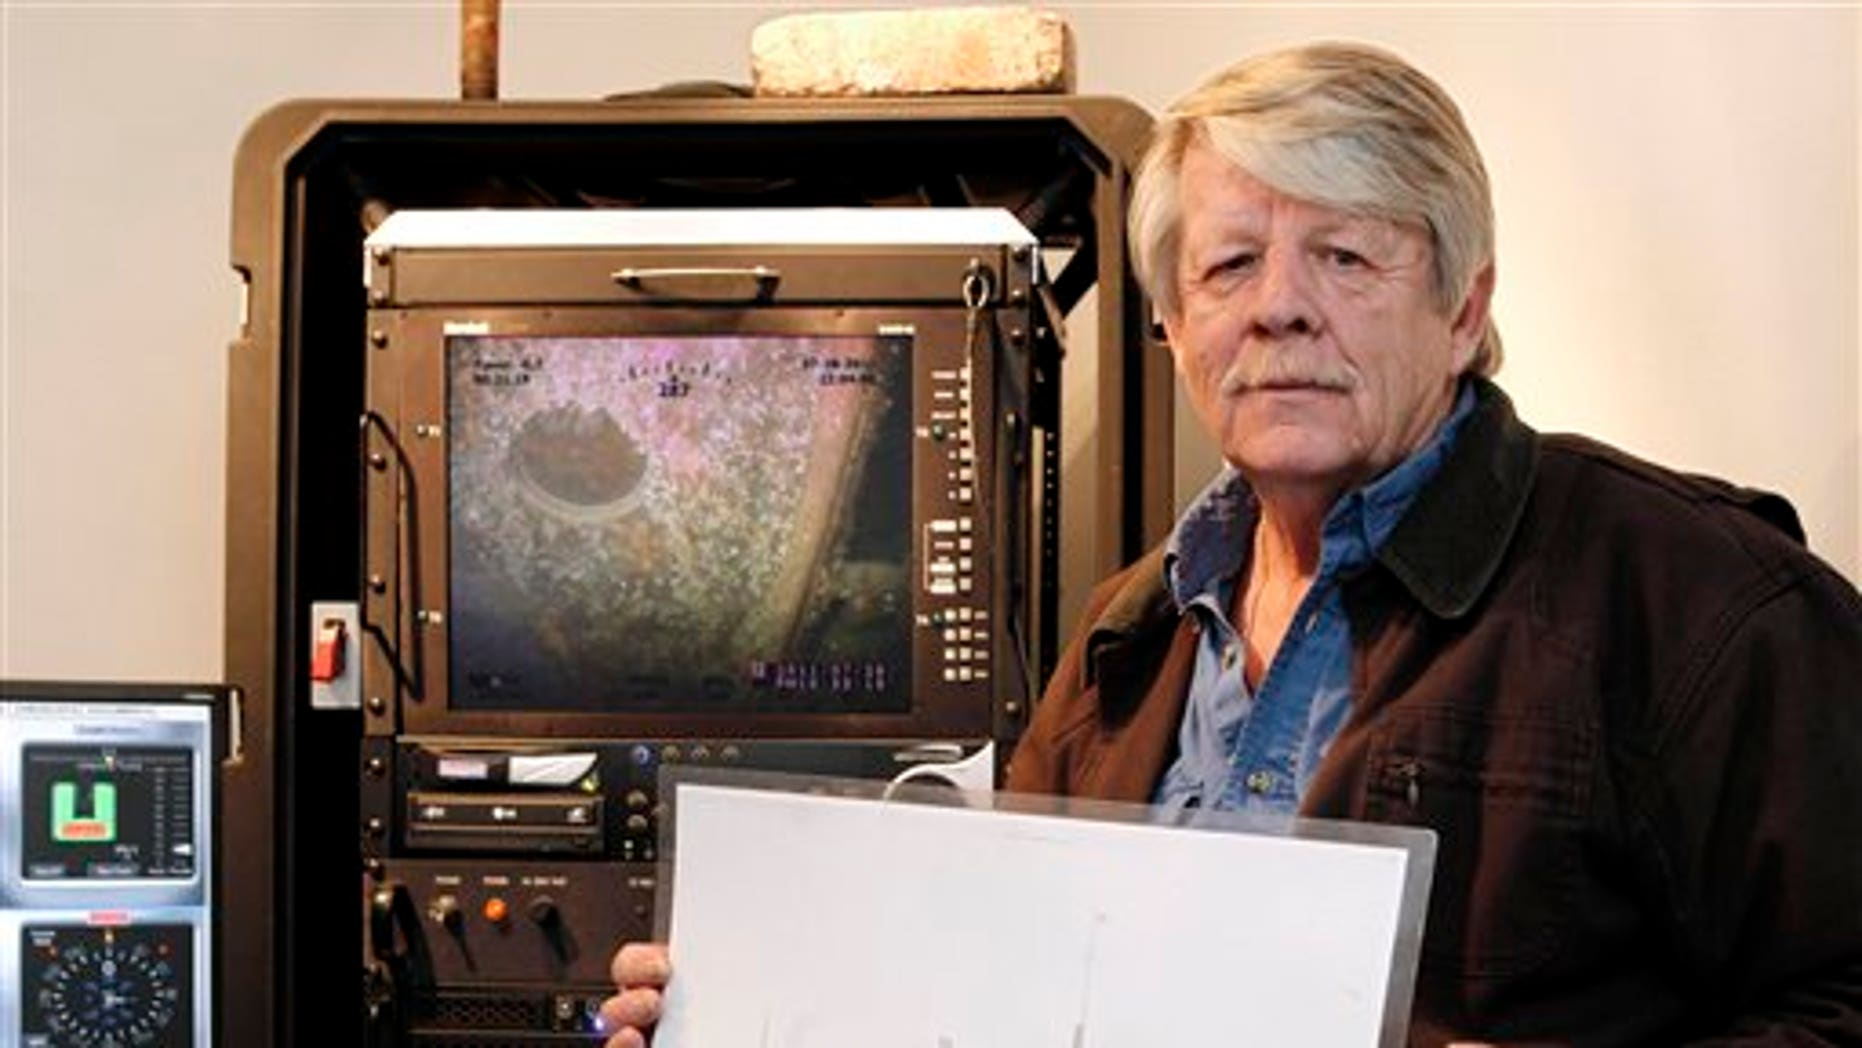 Feb. 1: Greg Brooks, co-manager of Sub Sea Research, is seen aboard the salvage ship Sea Hunter in Boston Harbor holding a picture of the British merchant ship Port Nicholson, which was sunk by a German U-boat in 1942 with a cargo of 71 tons of platinum now worth about $3 billion.